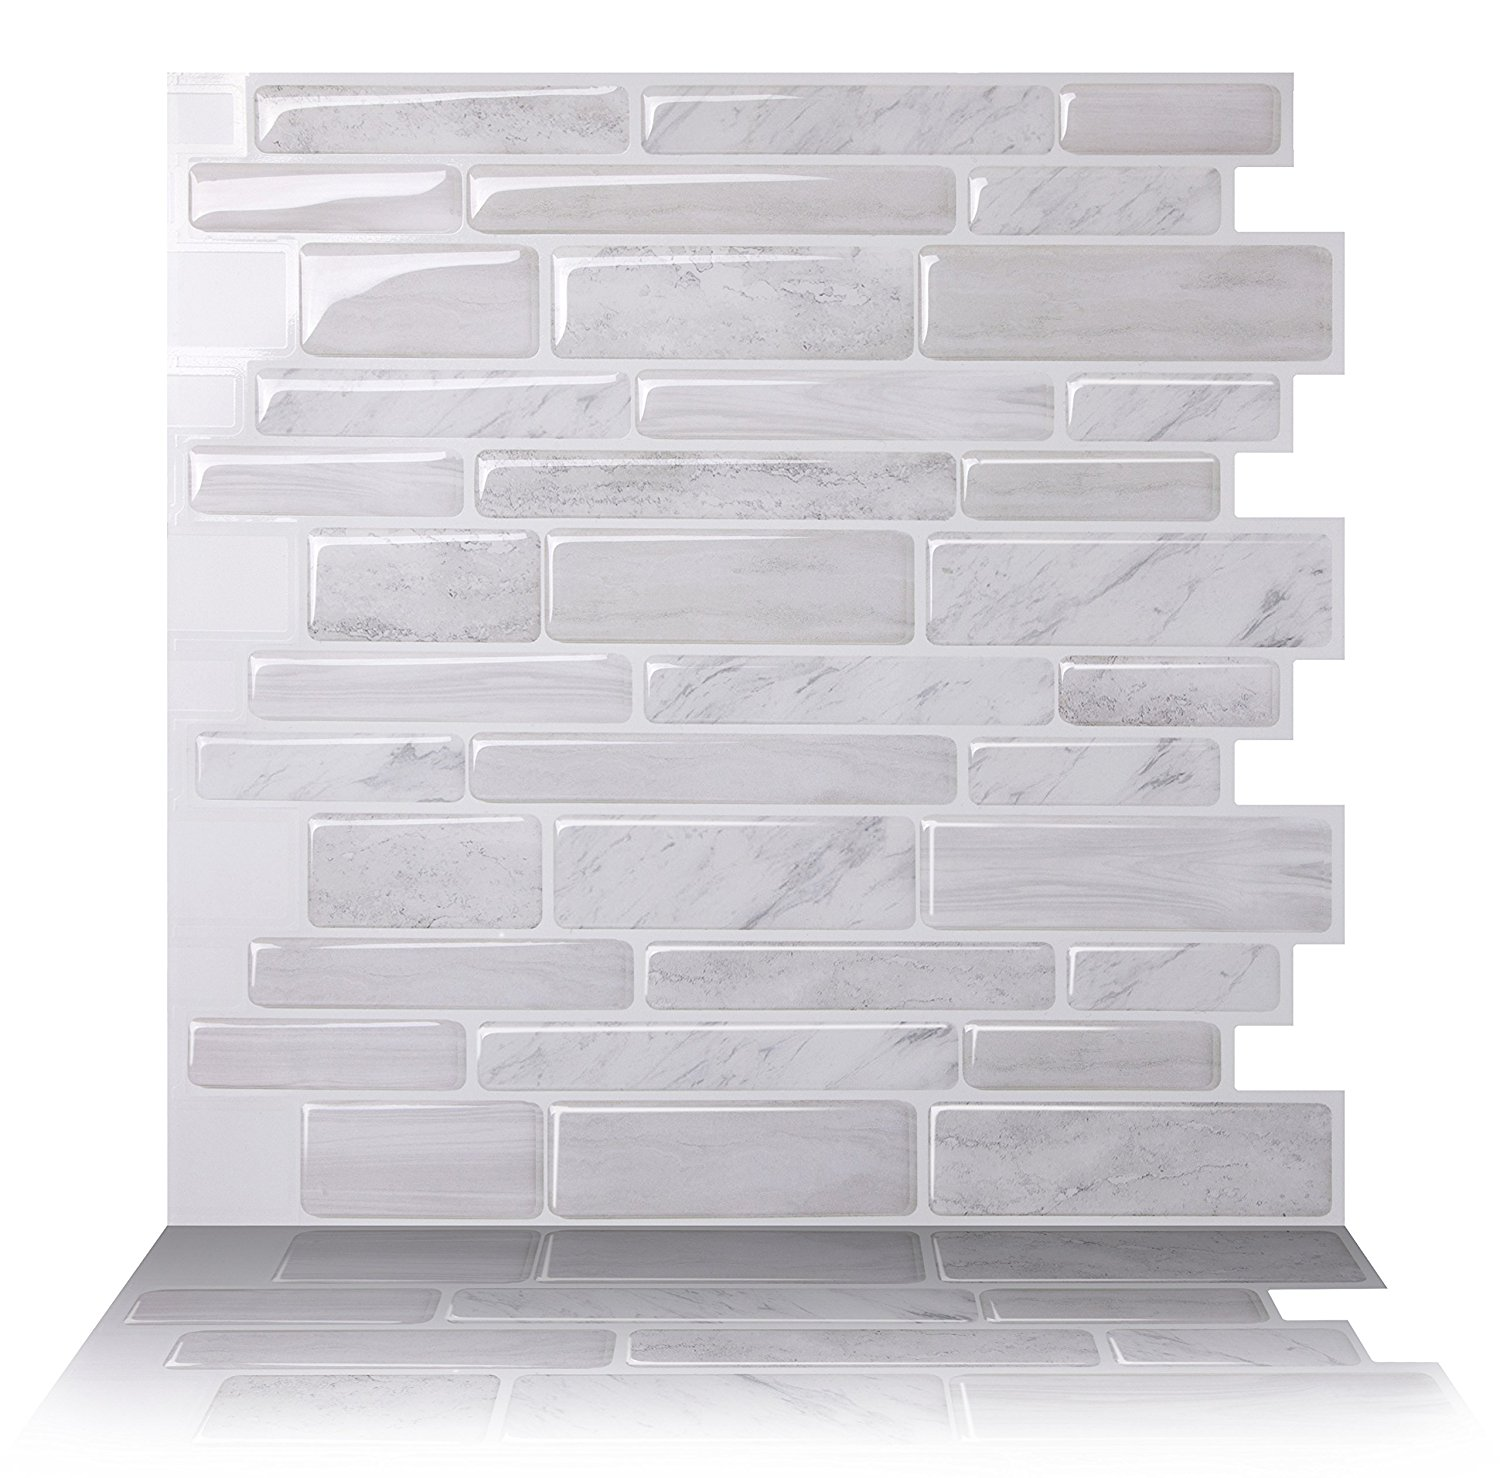 Tic Tac Tiles - Premium Anti Mold Peel and Stick Wall Tile Backsplash in Polito White